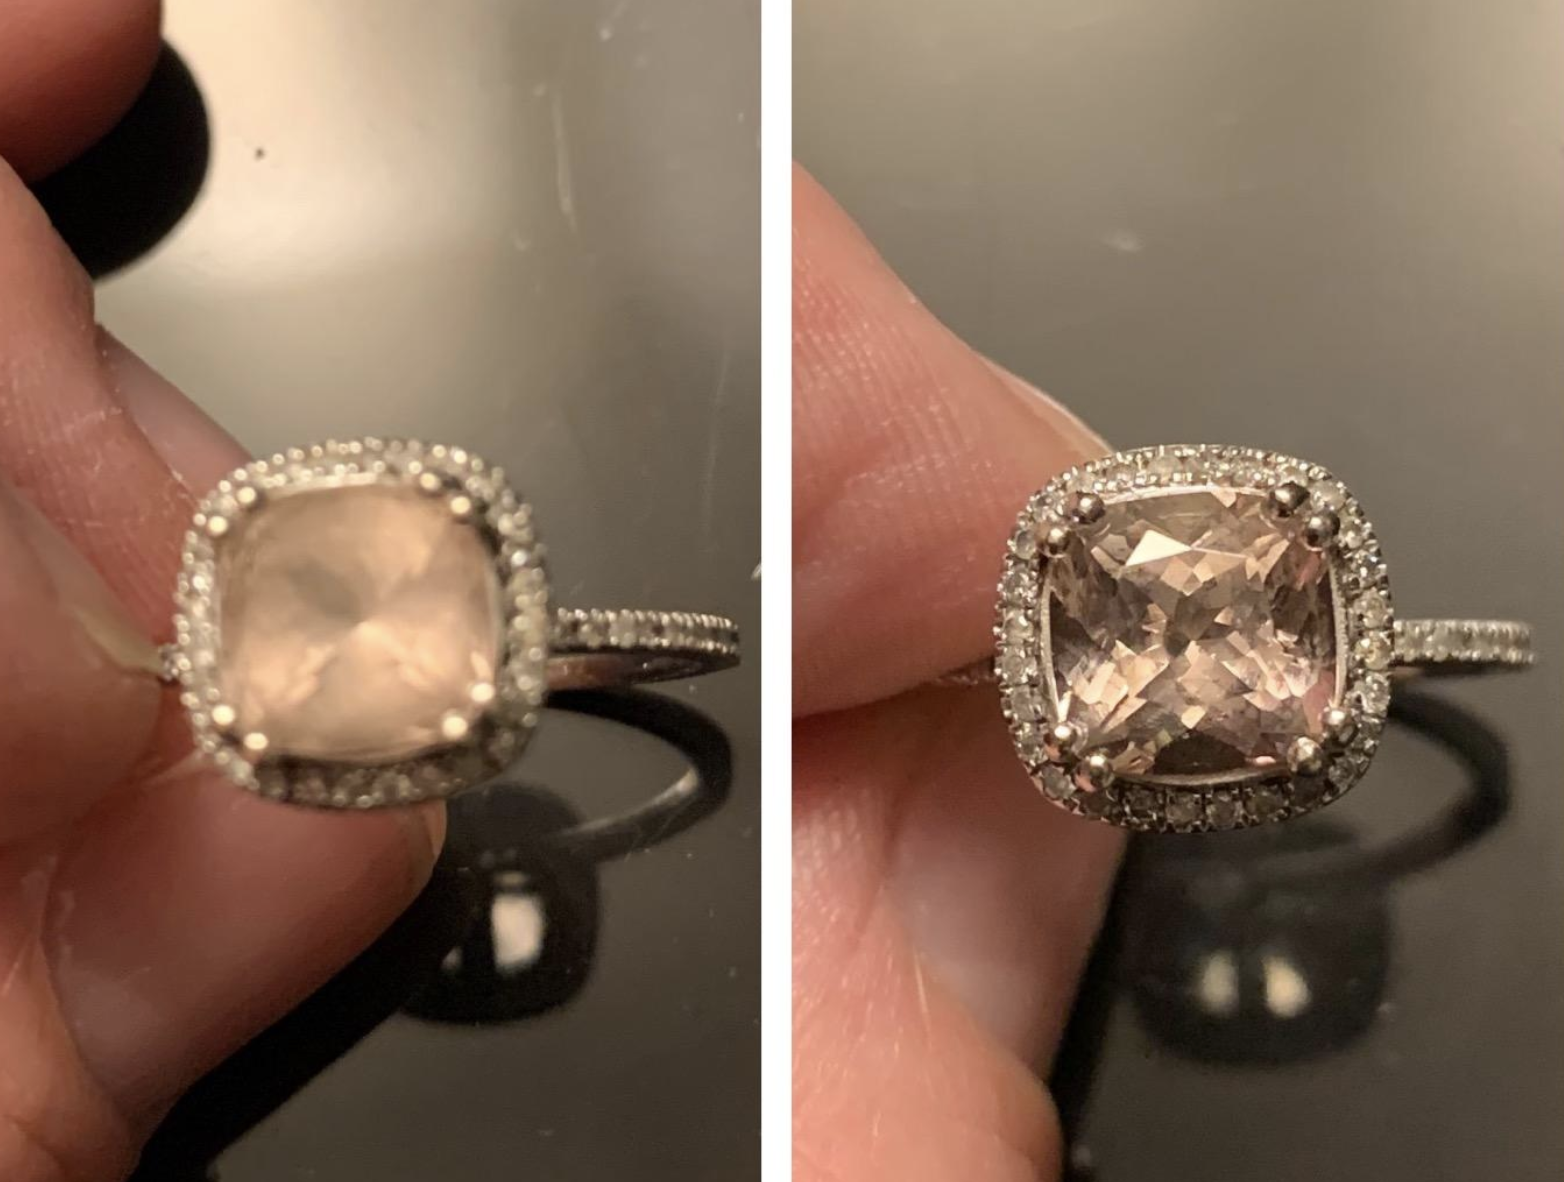 Before/after pic of reviewer's ring. The before pic is incredibly cloudy and the after pic shows a noticeable difference.